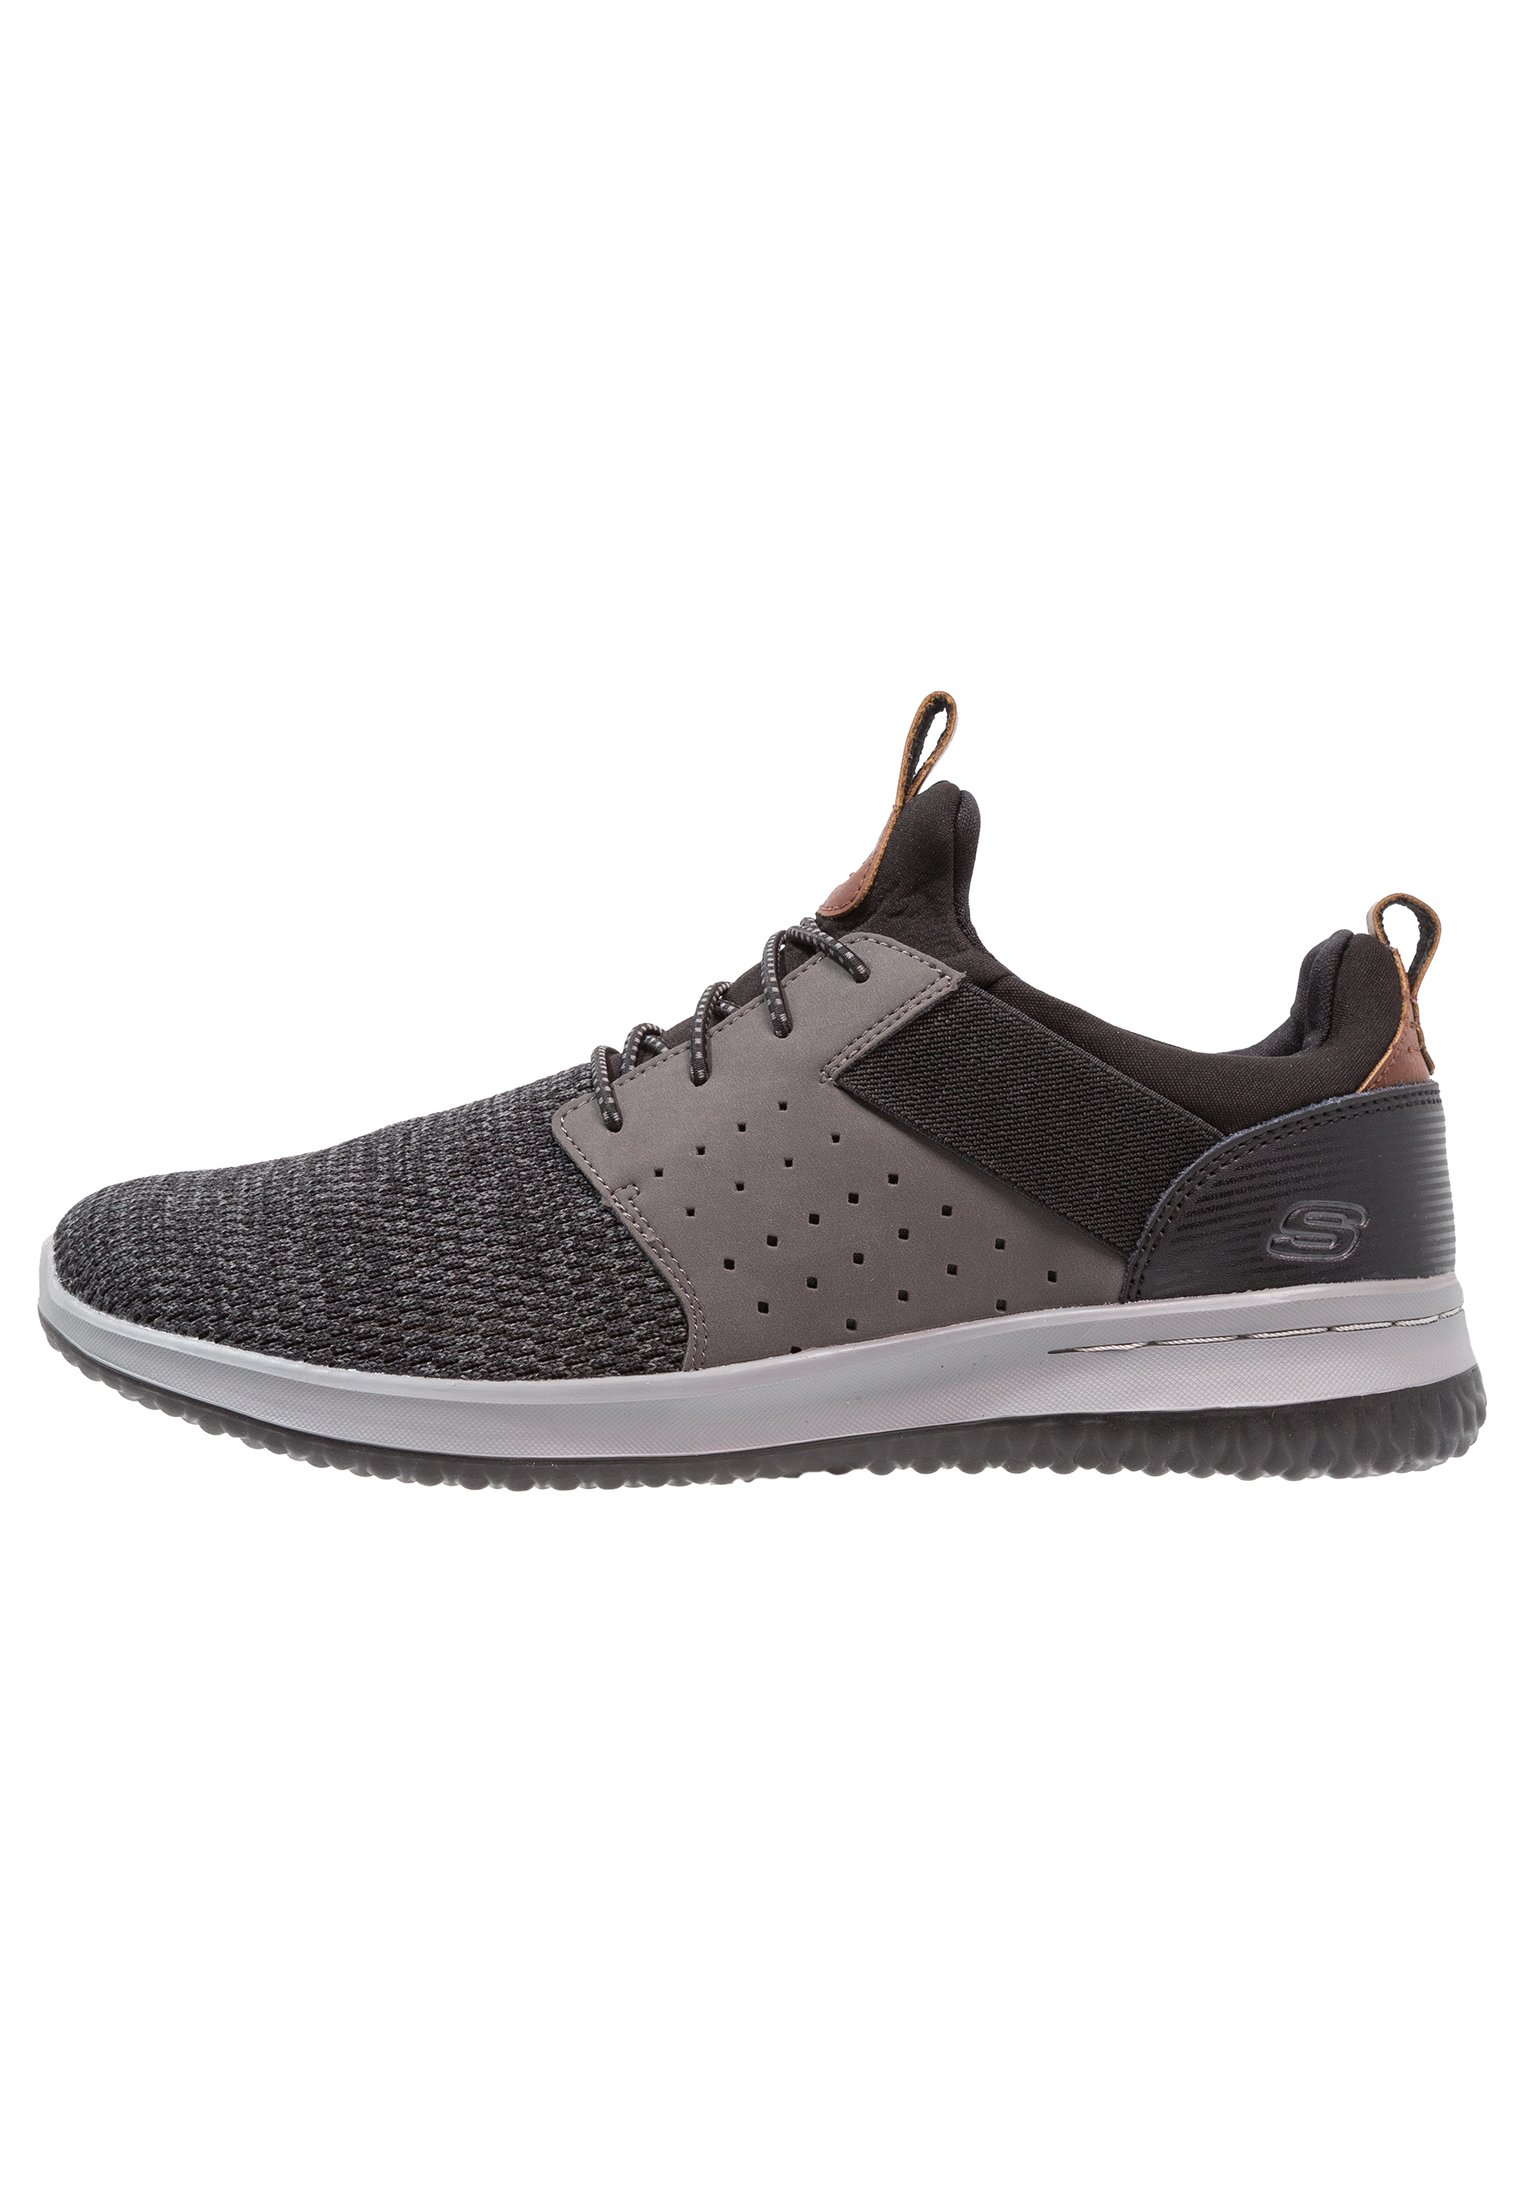 Skechers DELSON Scarpe senza lacci blackgrey Zalando.it